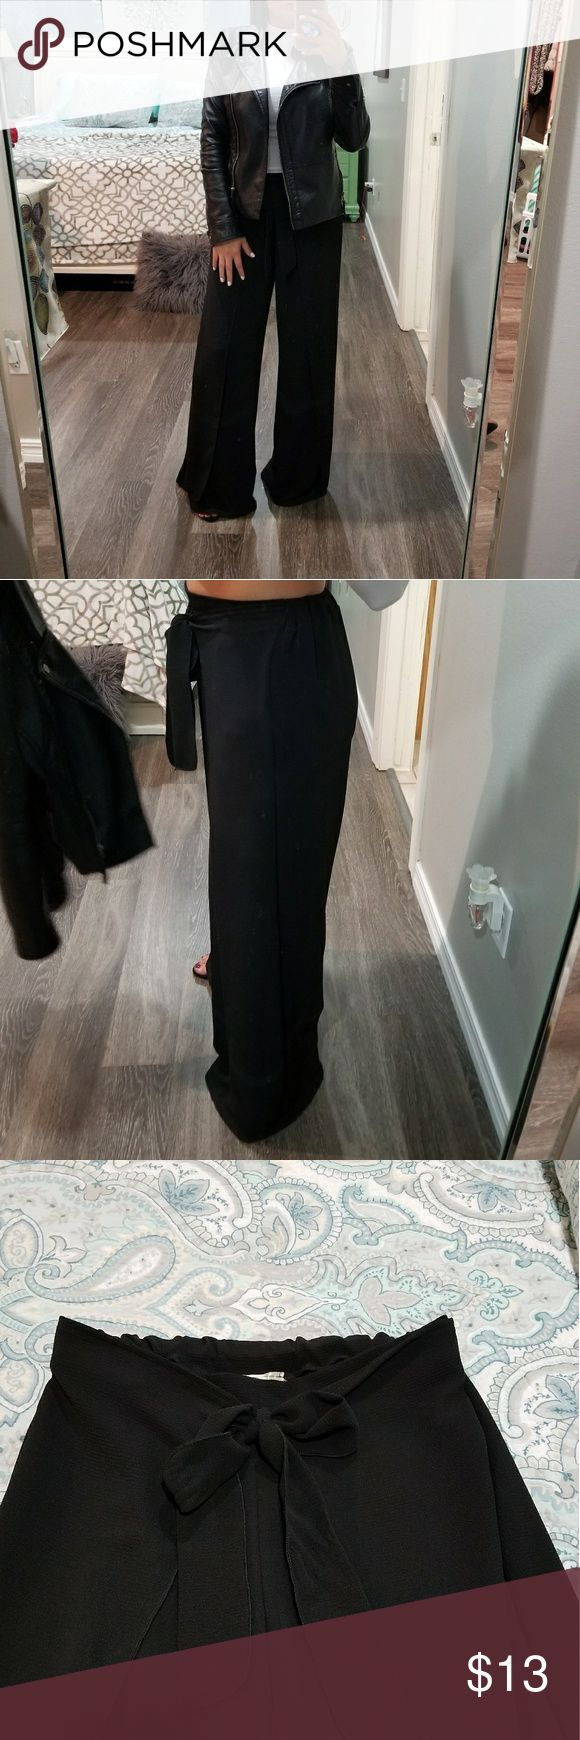 """Black palazzo pants Black palazzo dressy pants. Just bought and only worn twice. Pic #1 is how I wore it to work. I also wore to a party with a sparkly crop top! Styling these pants are endless! Posted a pic of them in neutral color so you can better see the detail of the same pants in black.   💜waist is elastic and very stretchy. I stretched them out as far as 17"""" to see how far they would actually stretch. 💜full length is about 40"""" long.  💜Bundle and save!! 💜or make offer! love nation…"""